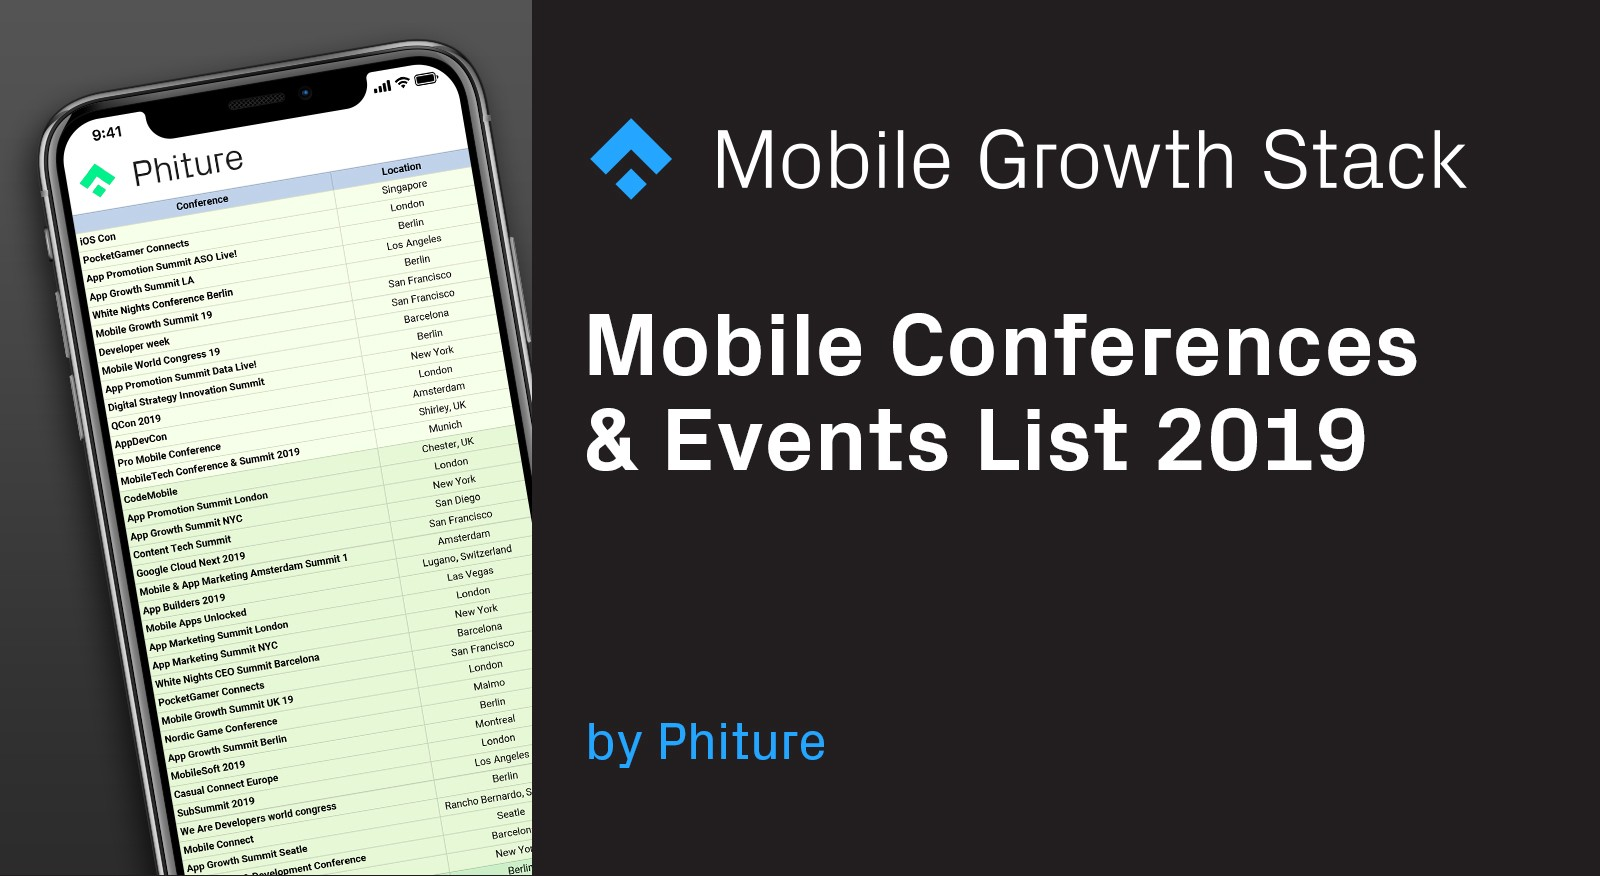 Mobile Conferences and Events List 2019